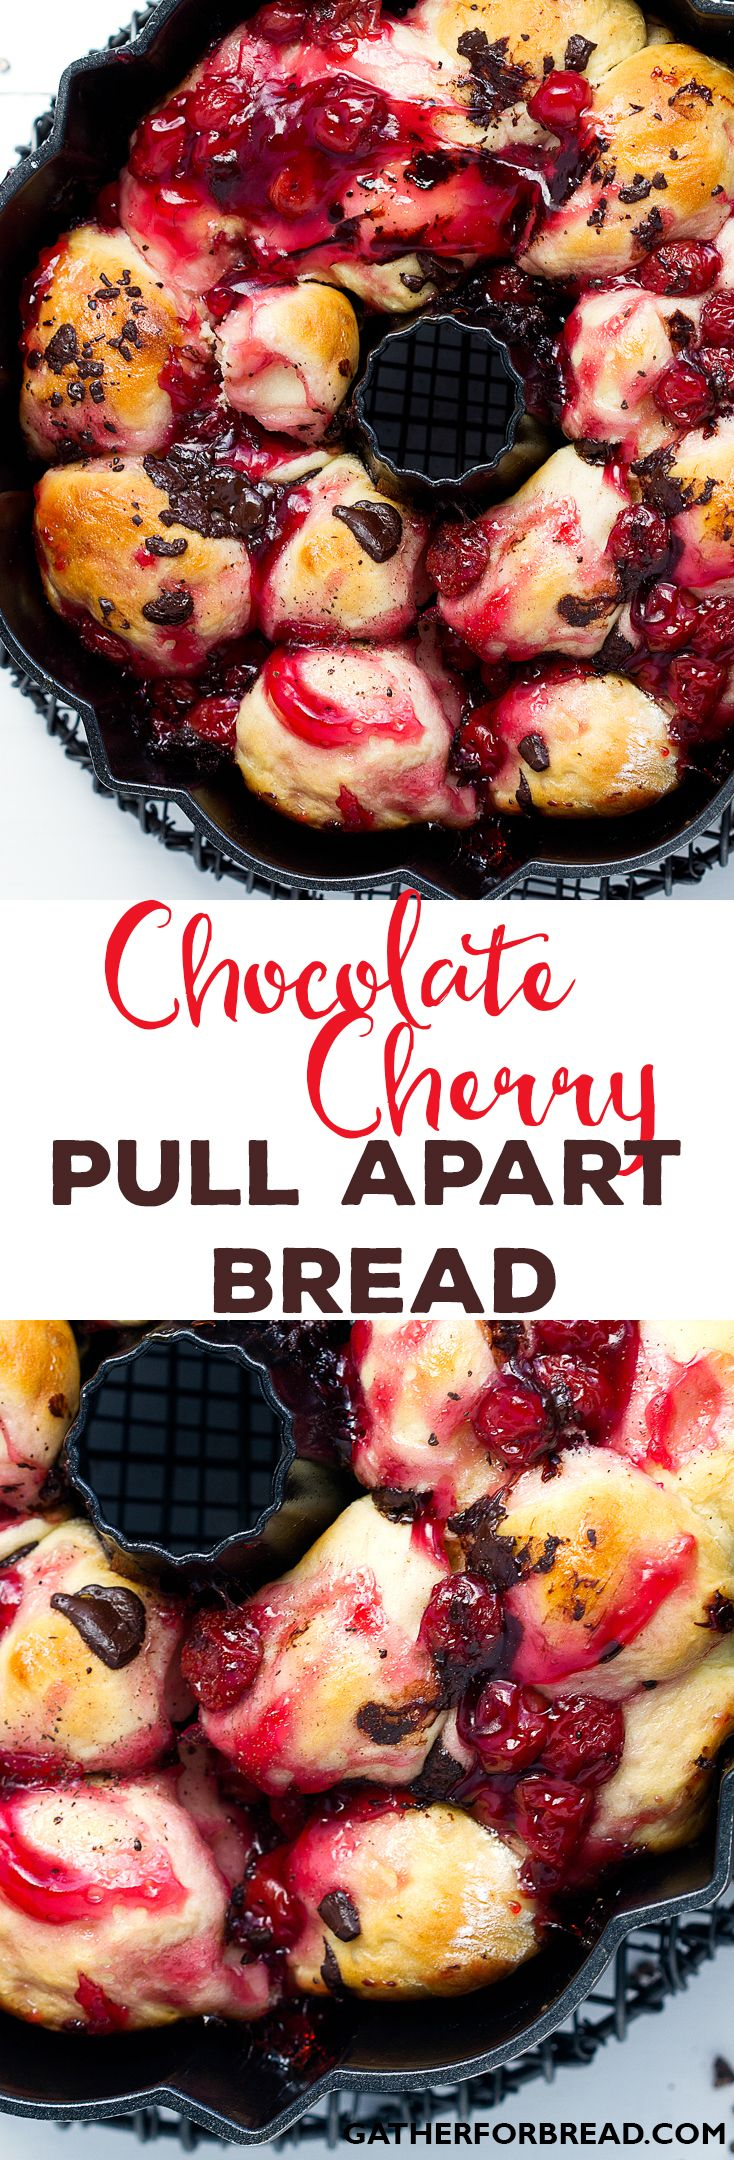 Chocolate Cherry Pull Apart Bread - Homemade bread with a sweet cherry and chocolate touch. Irresistible! @redstaryeast